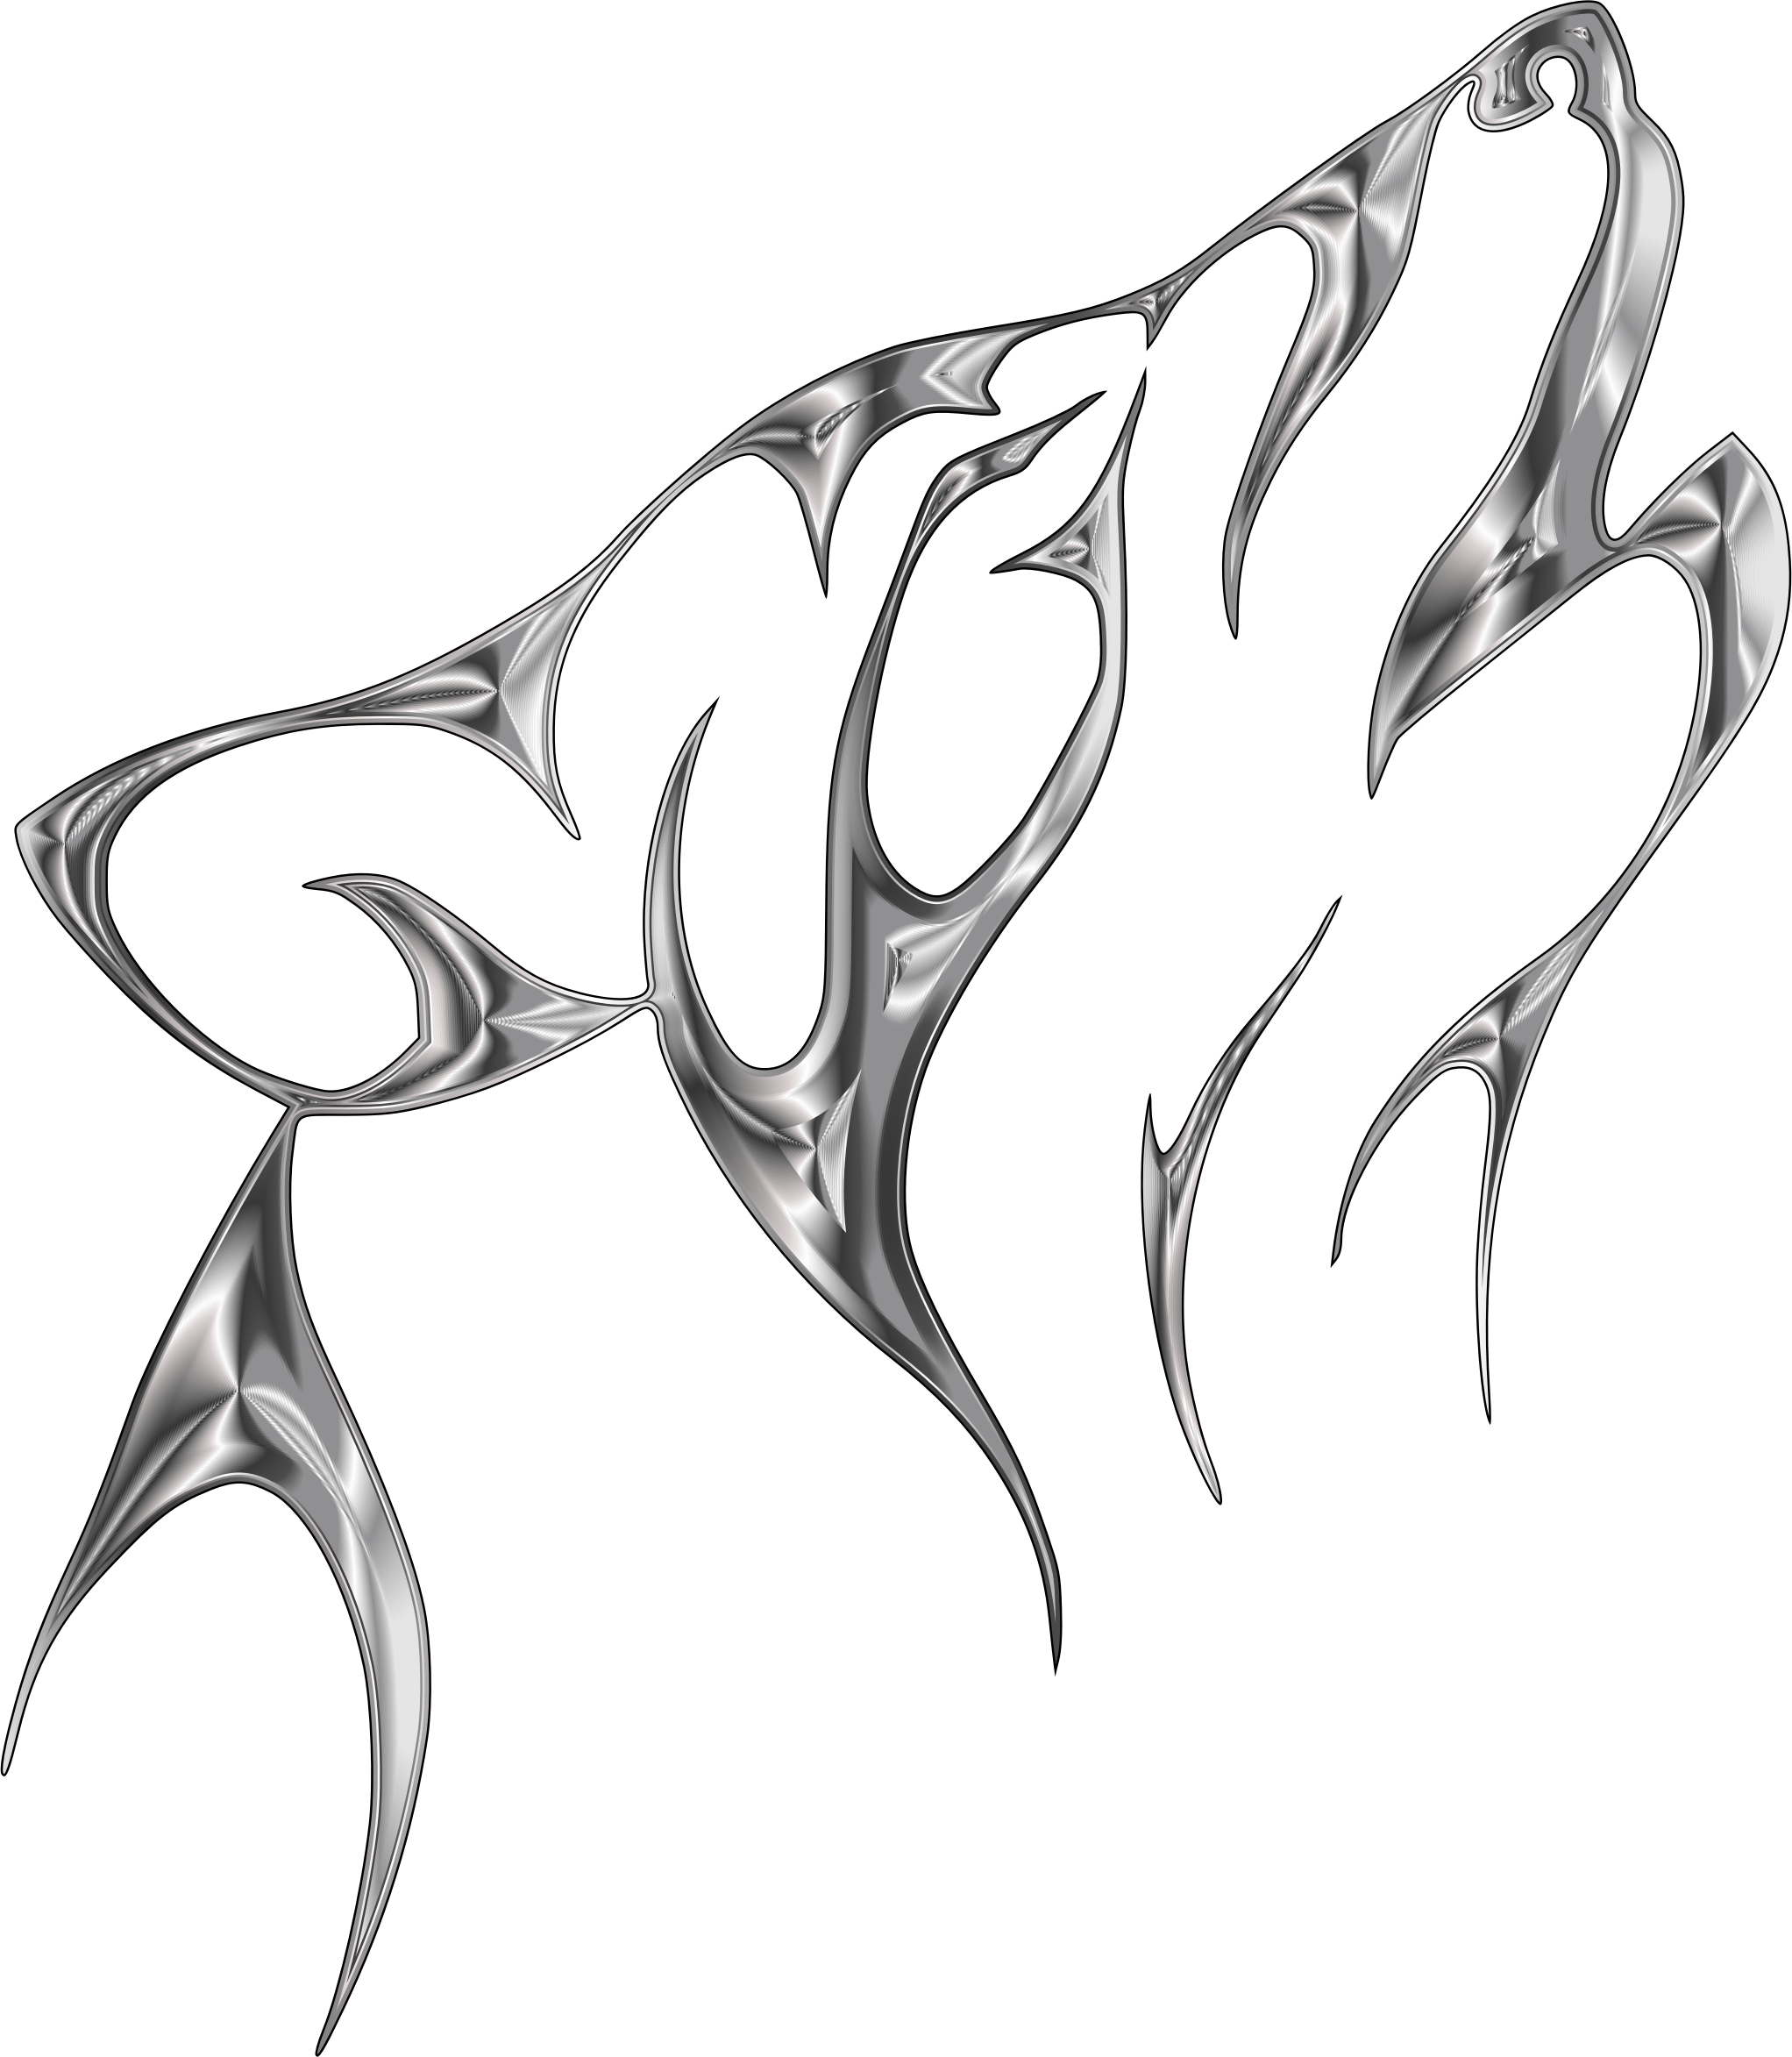 Wolf clipart abstract. Steel tribal no background